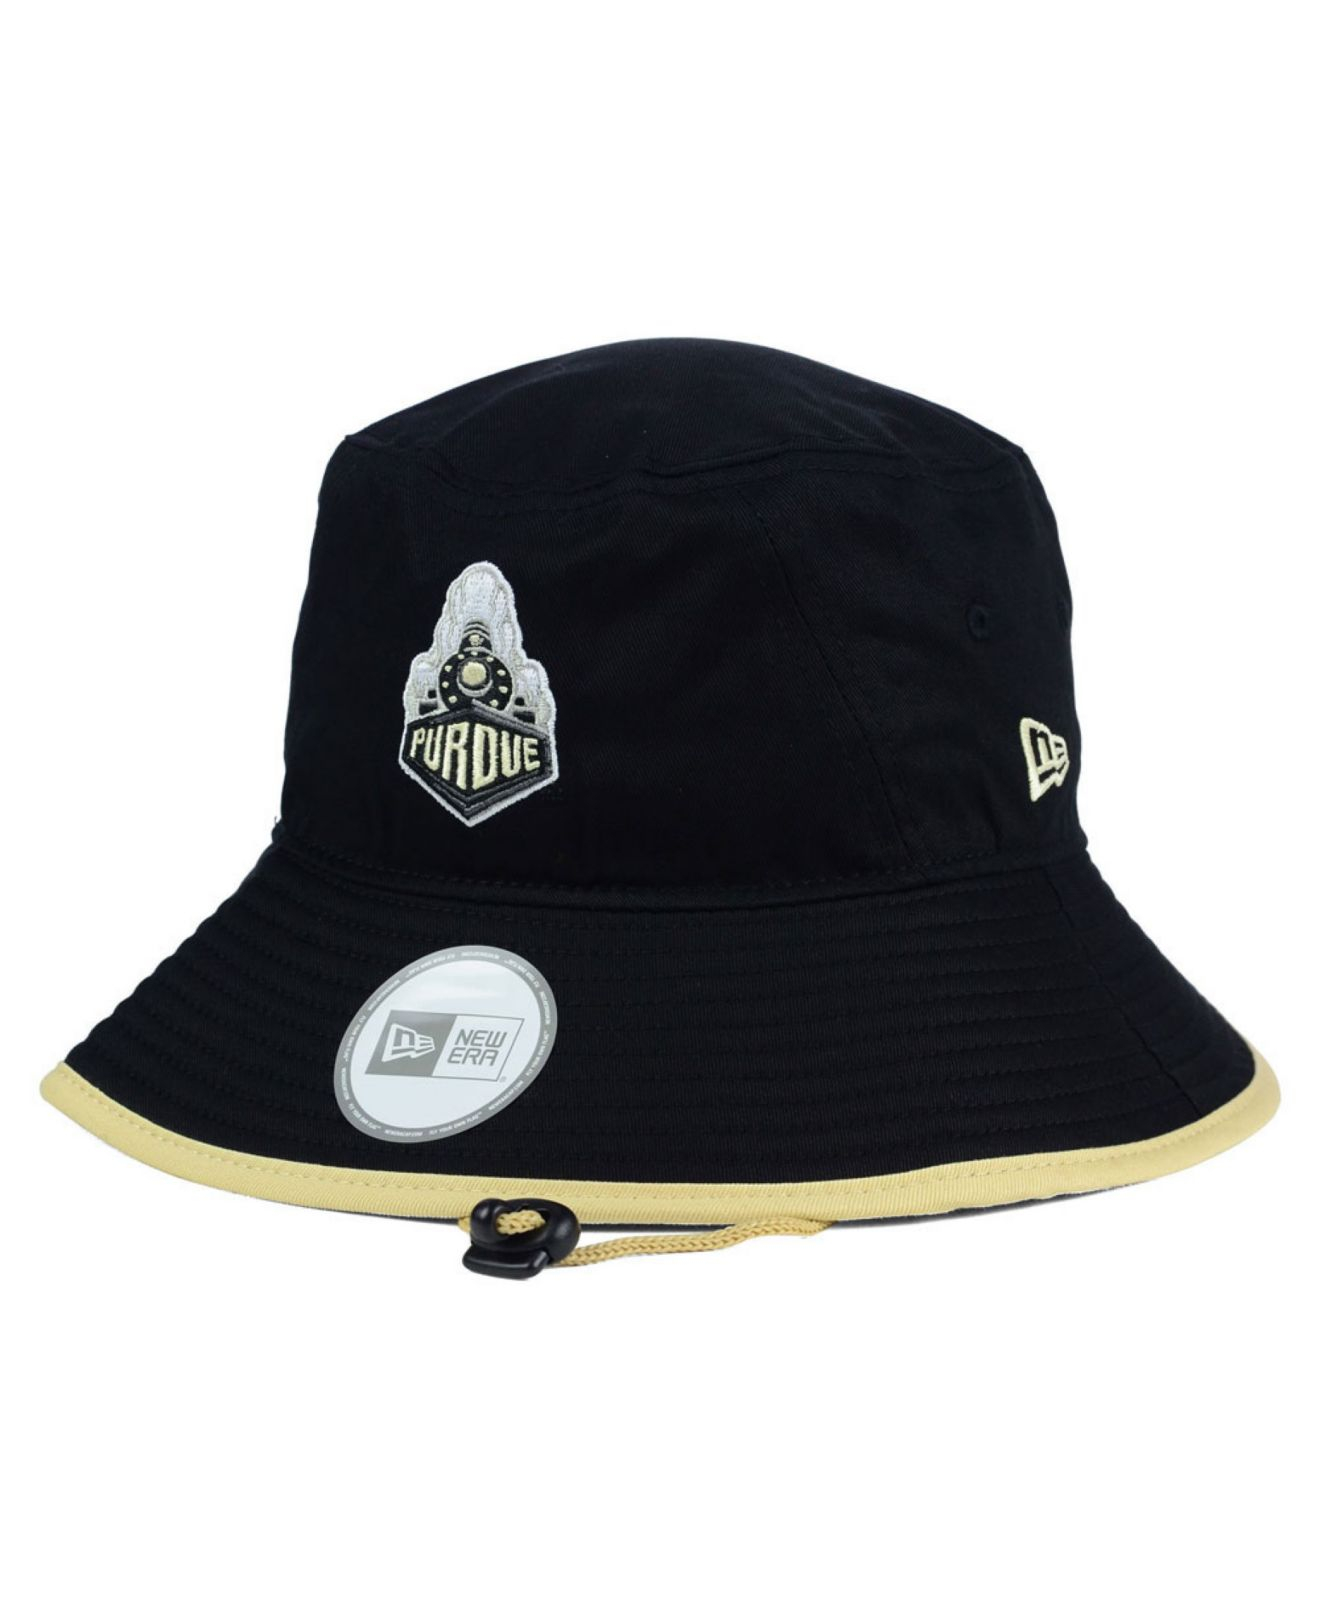 3d204025ec1 ... order norway lyst ktz purdue boilermakers tip bucket hat in black for  men ed97e e66a7 0ebce